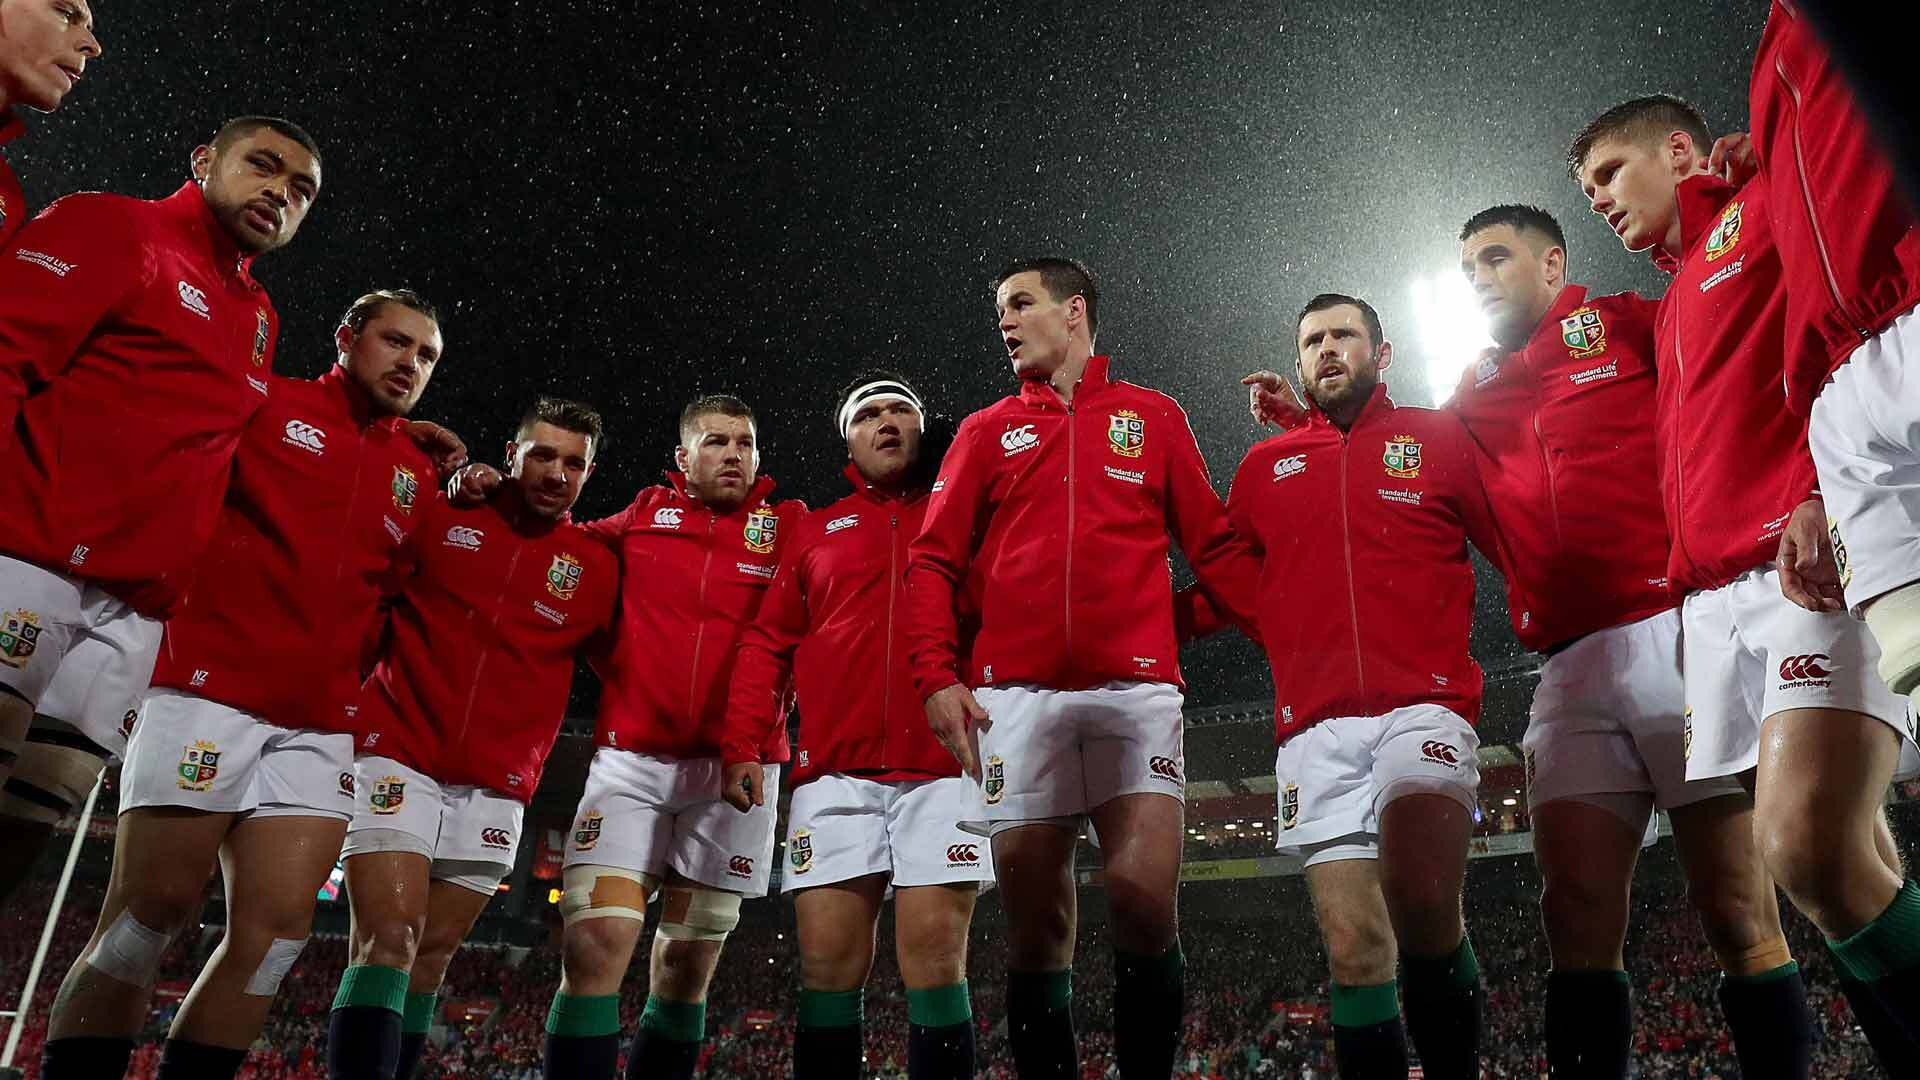 British & Irish Lions in a huddle during a match